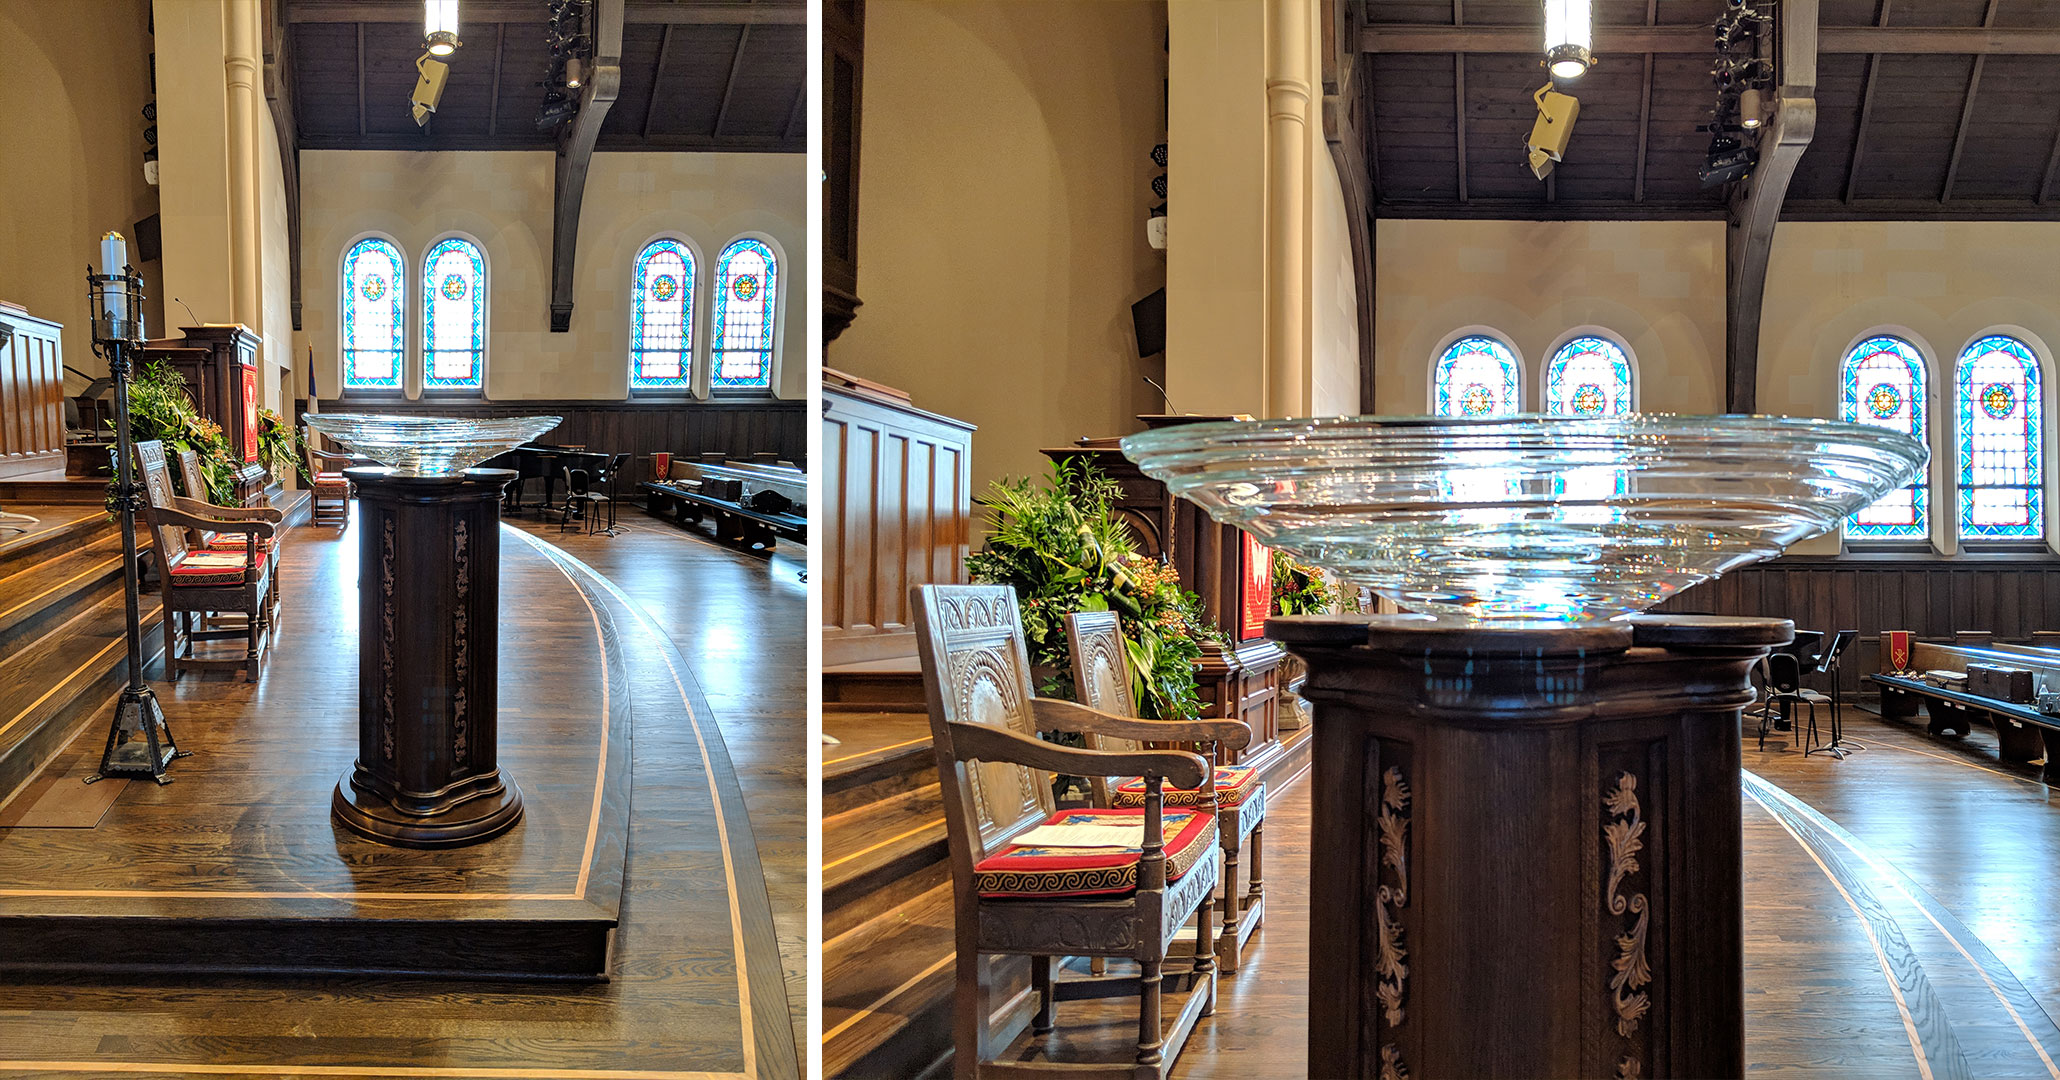 Historic Preservationists and Interior Designers at Boudreaux worked with First Presbyterian Church in Spartanburg, SC to design the baptismal font.